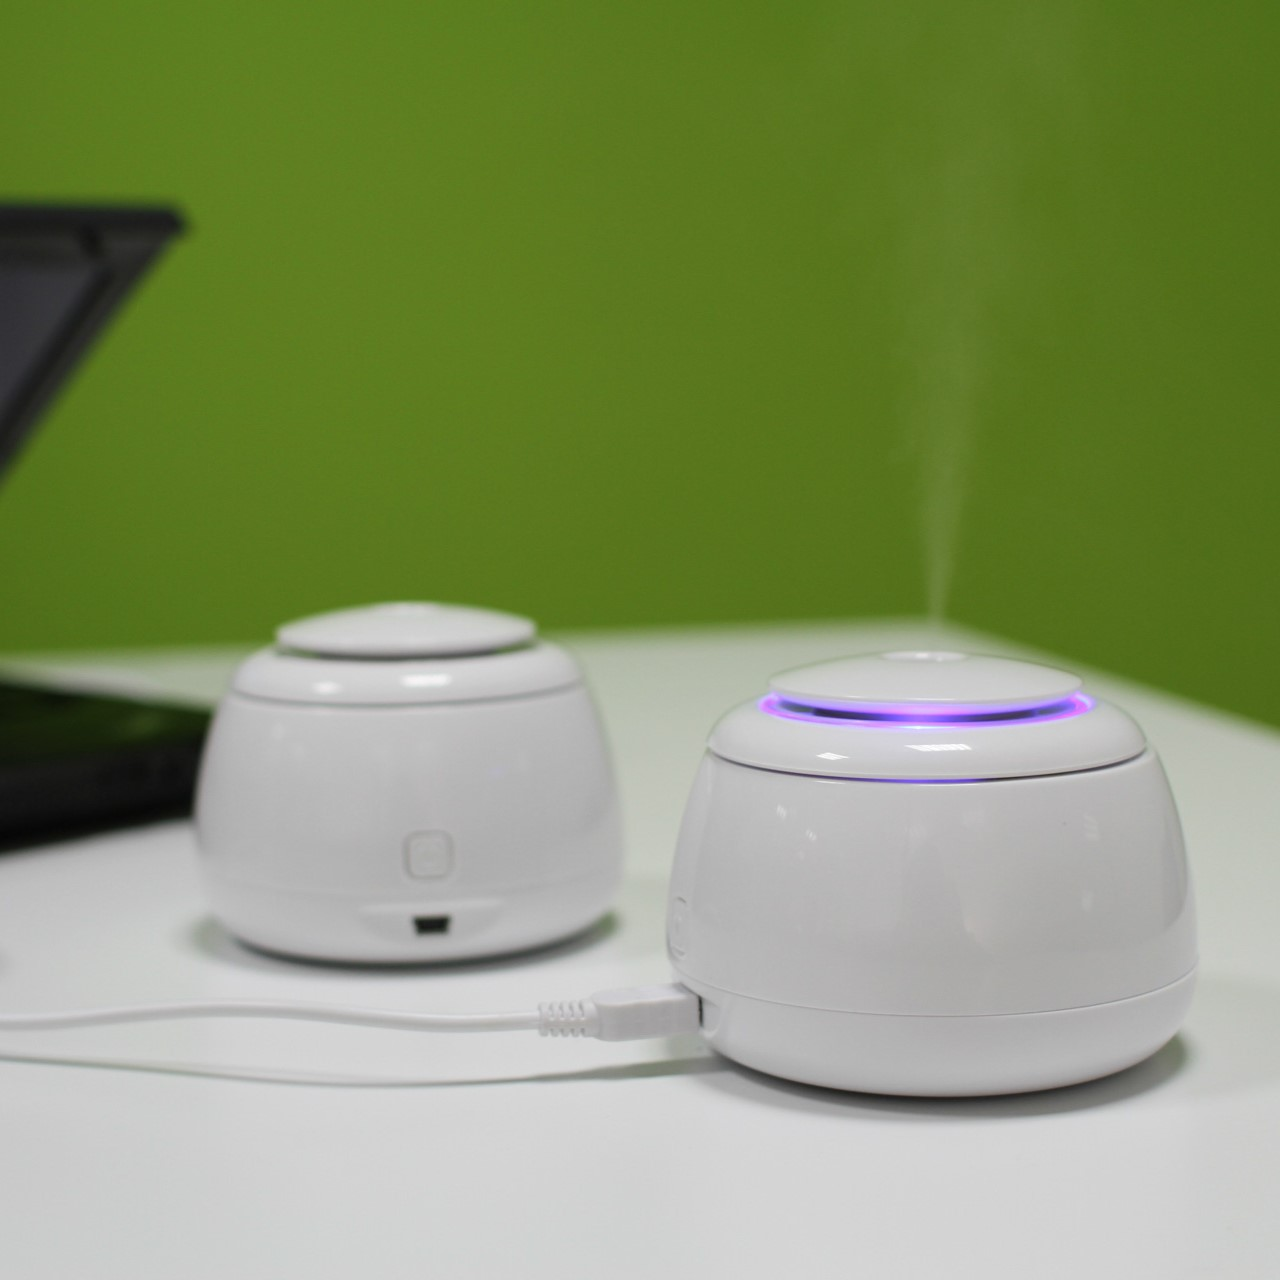 Rice Cooker Mini USB Humidifier